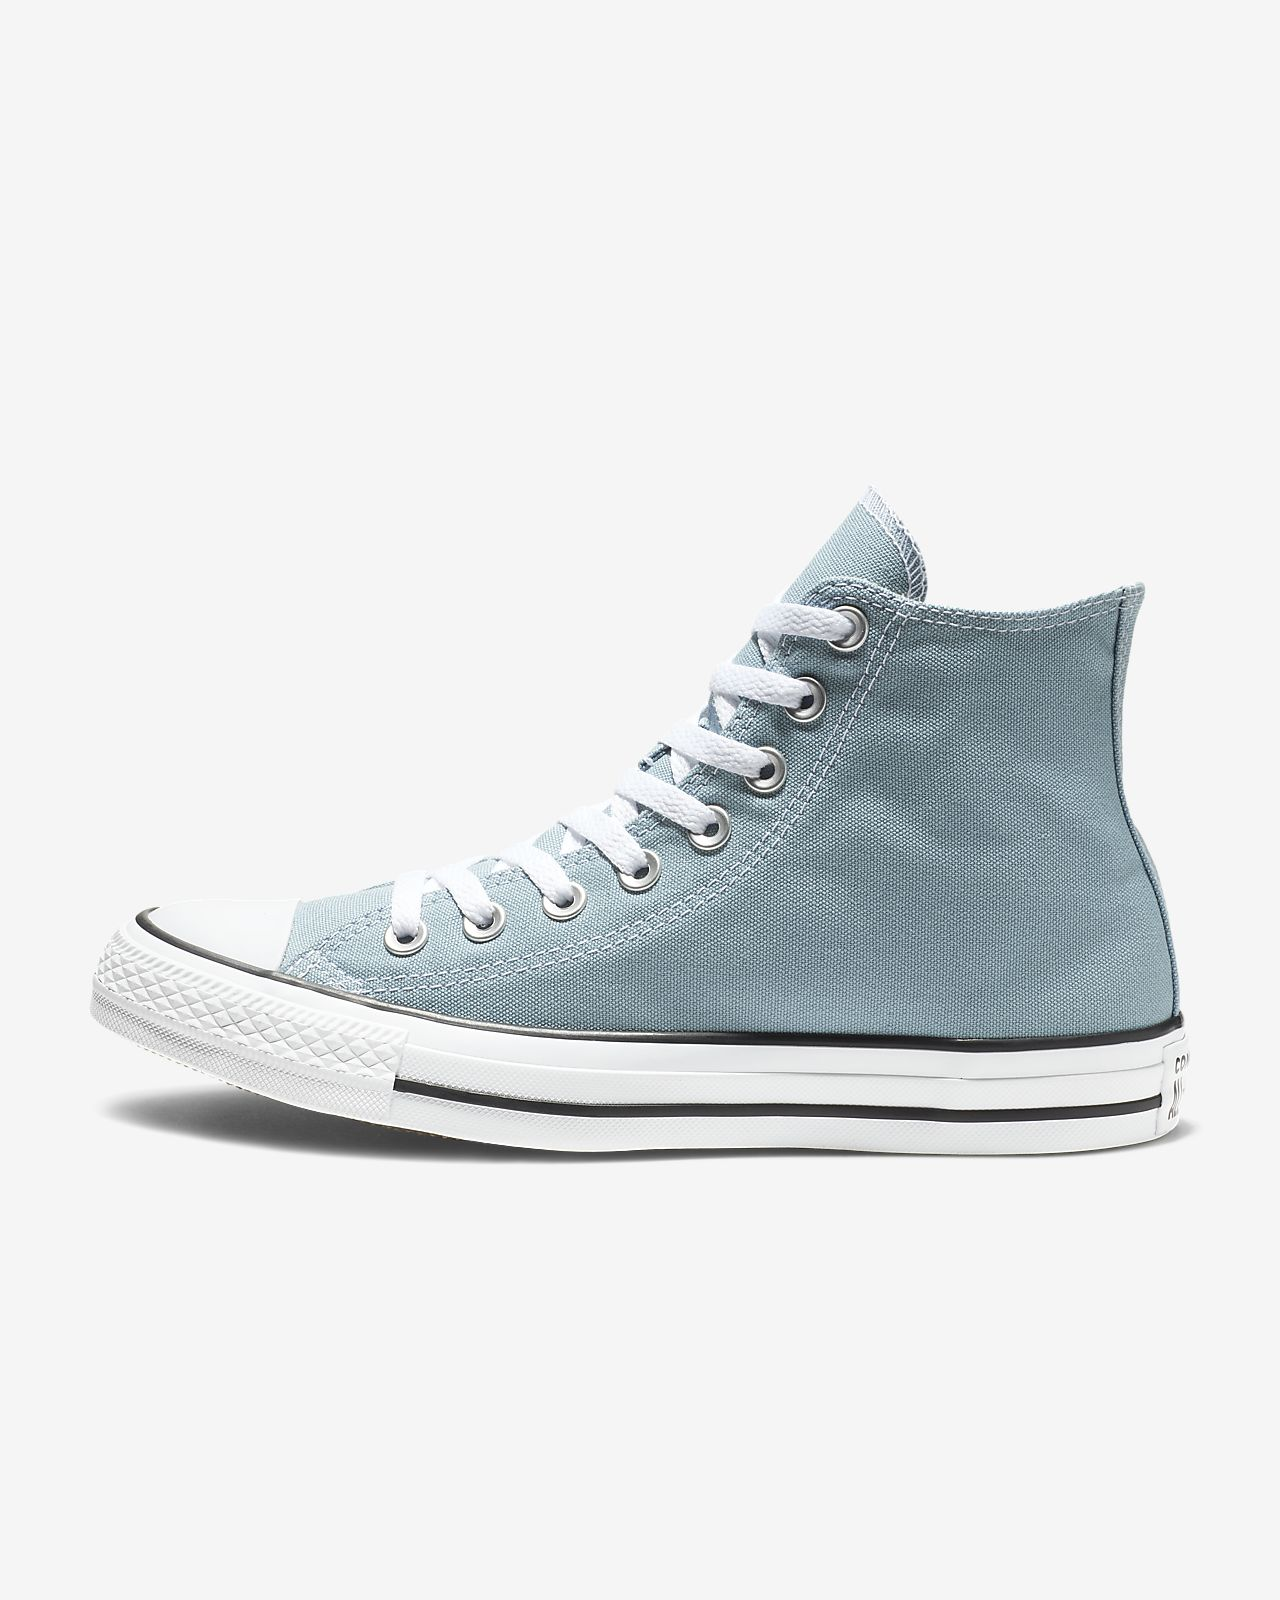 Converse Chuck Taylor All Star Seasonal Colors High Top Unisex Shoe